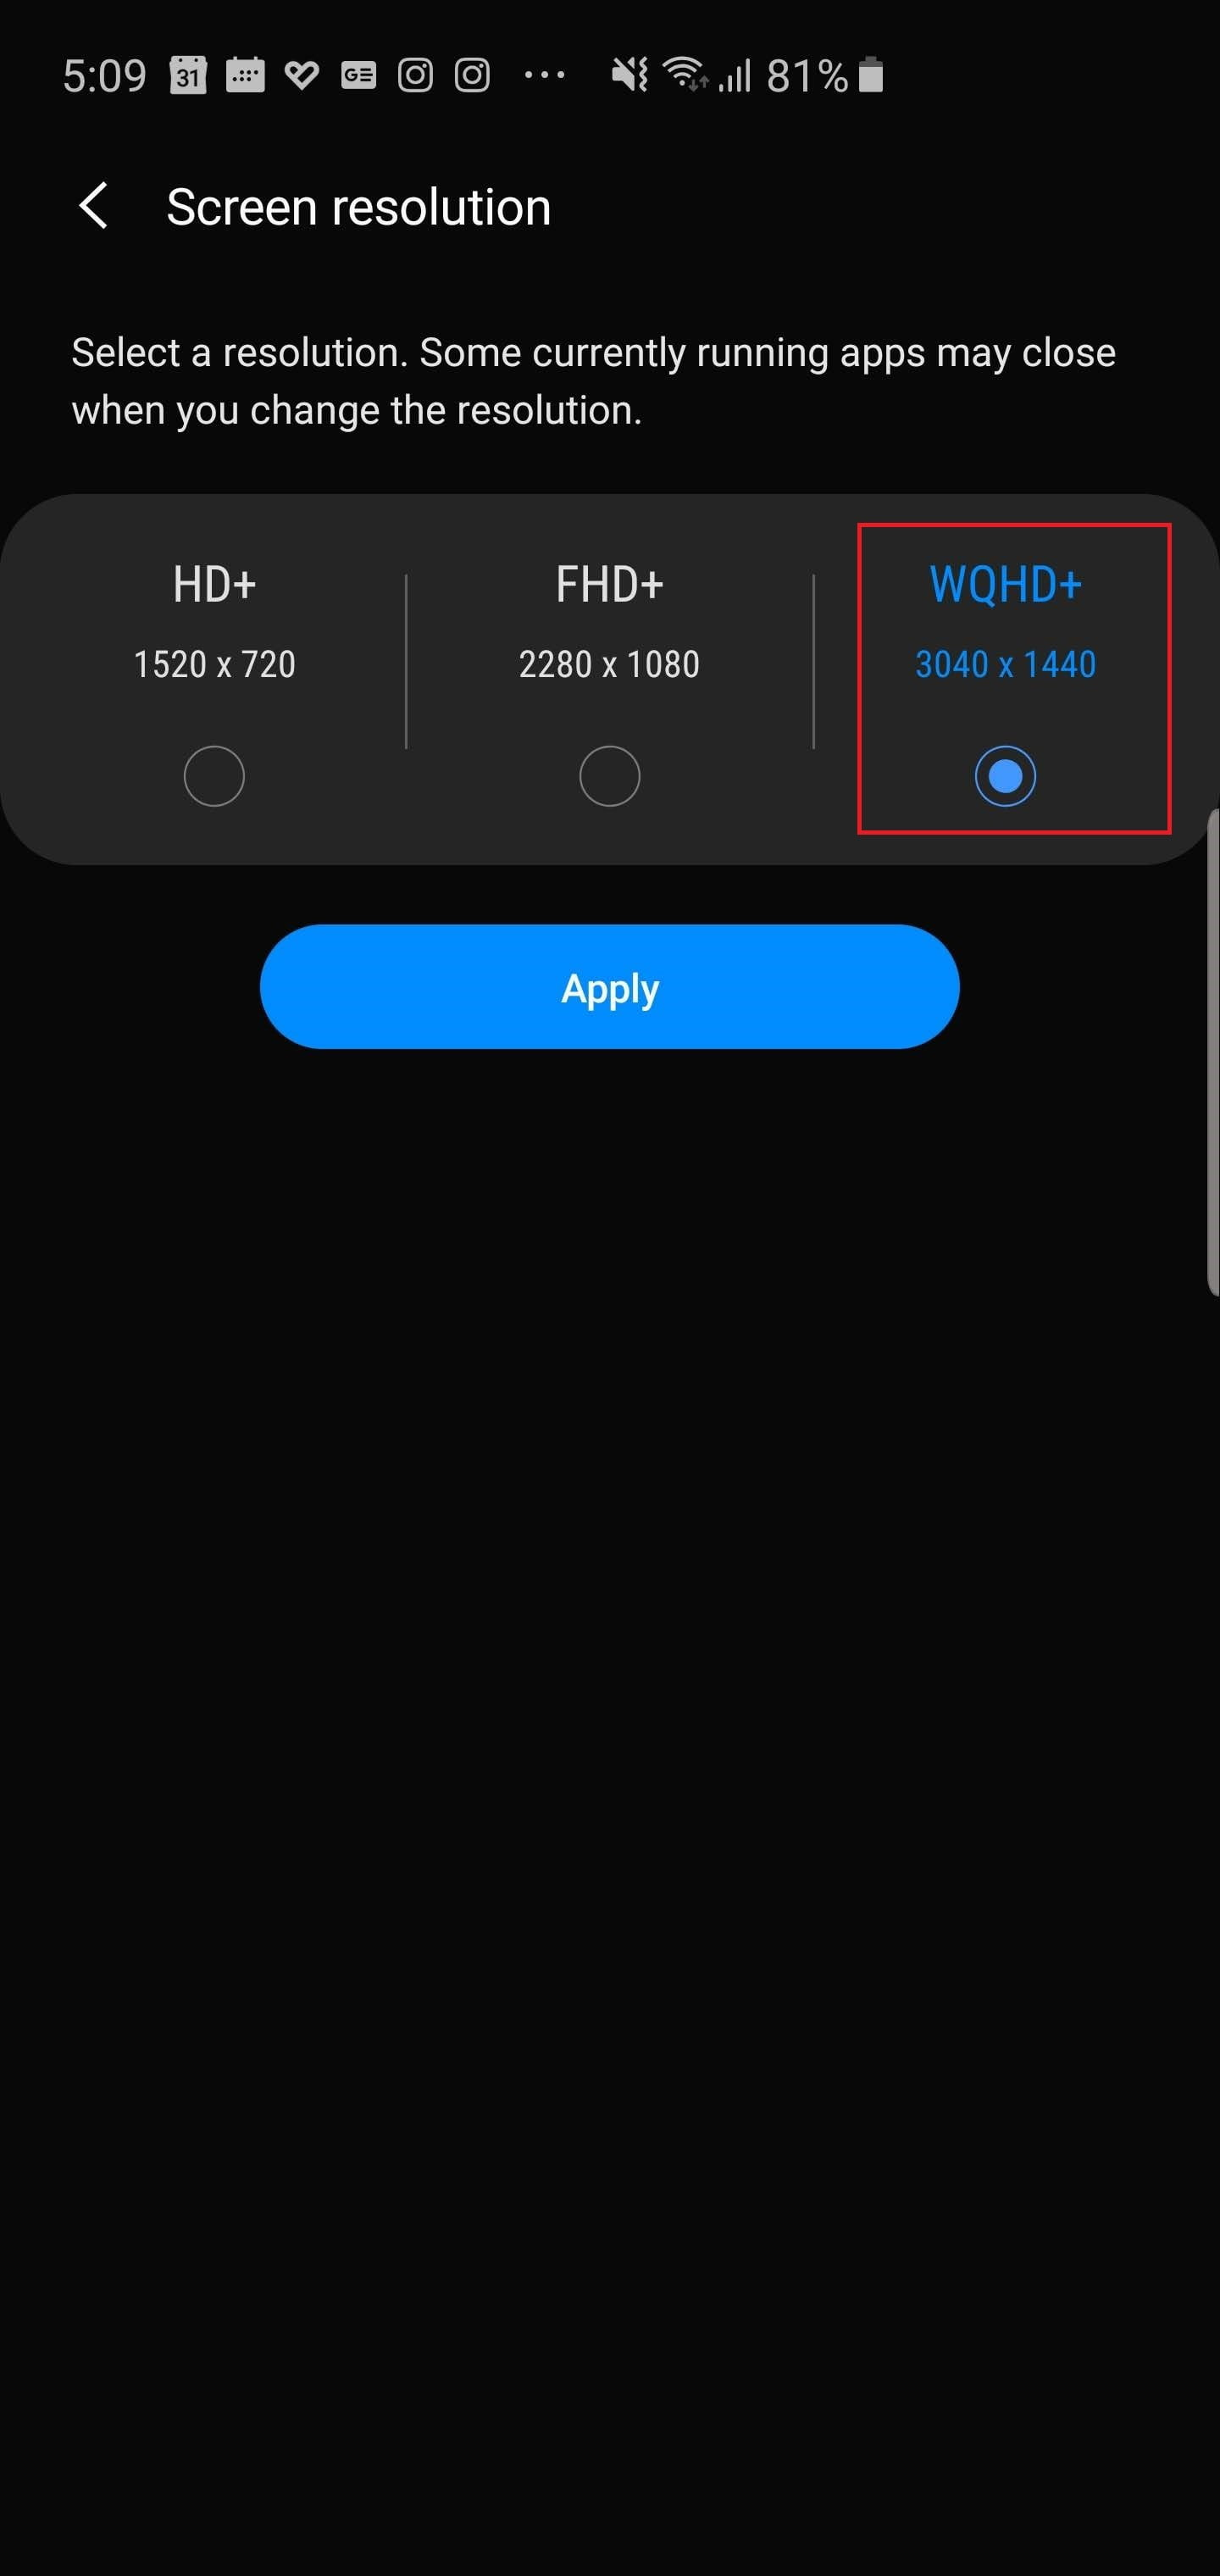 Galaxy S10 S10 Plus Or S10e 12 Key Settings To Change Digital Trends